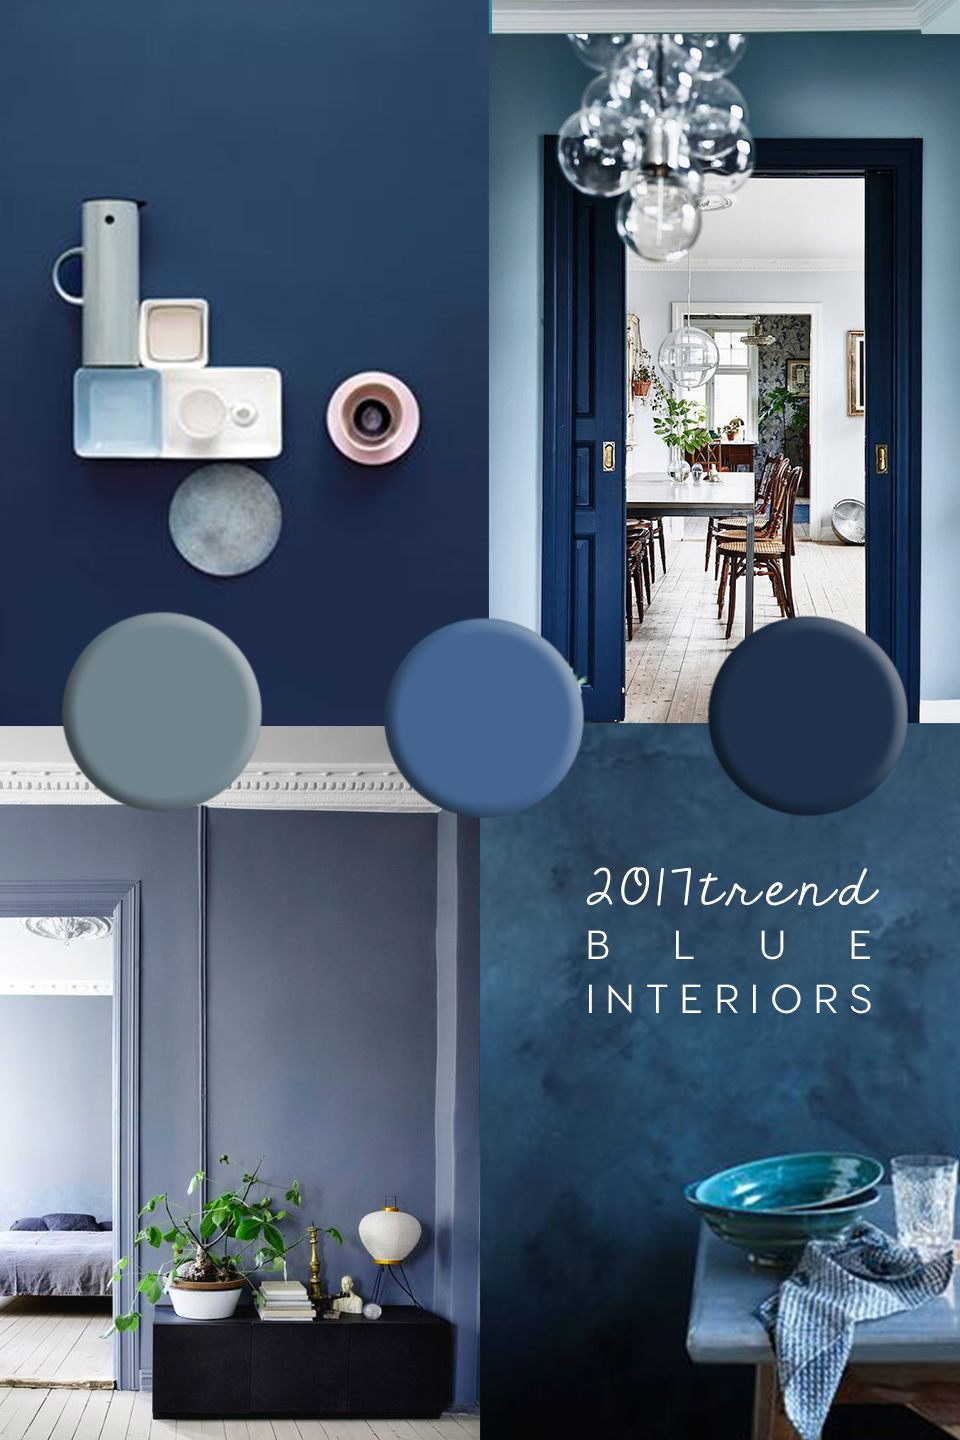 Best Home Decor Blogs 2017 Of Interior Trends Interiors